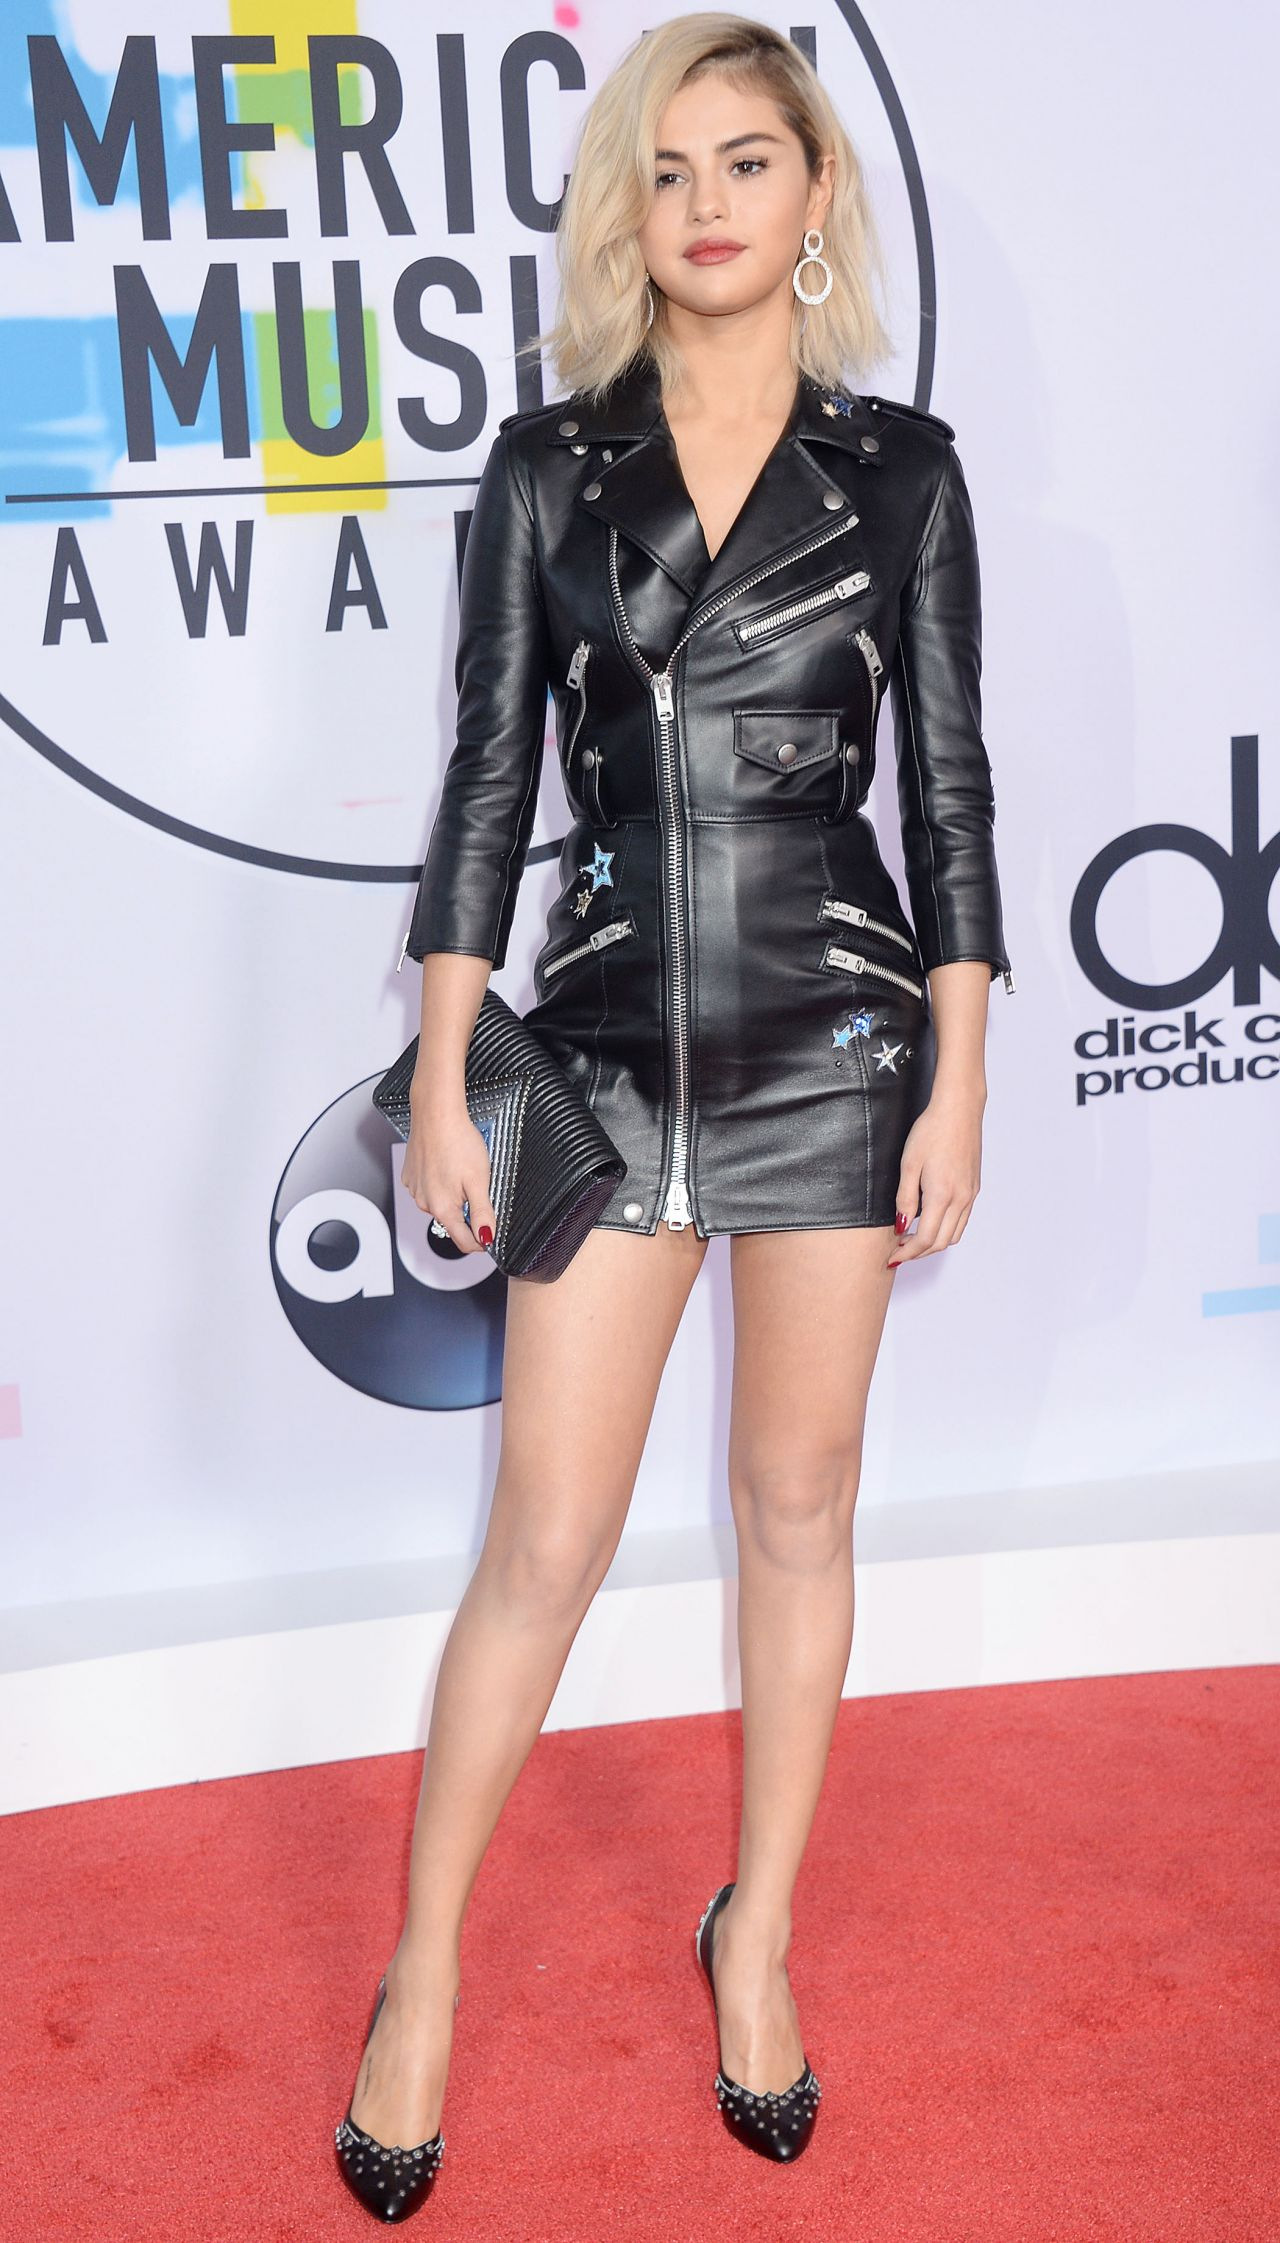 http://celebmafia.com/wp-content/uploads/2017/11/selena-gomez-american-music-awards-2017-in-los-angeles-1.jpg